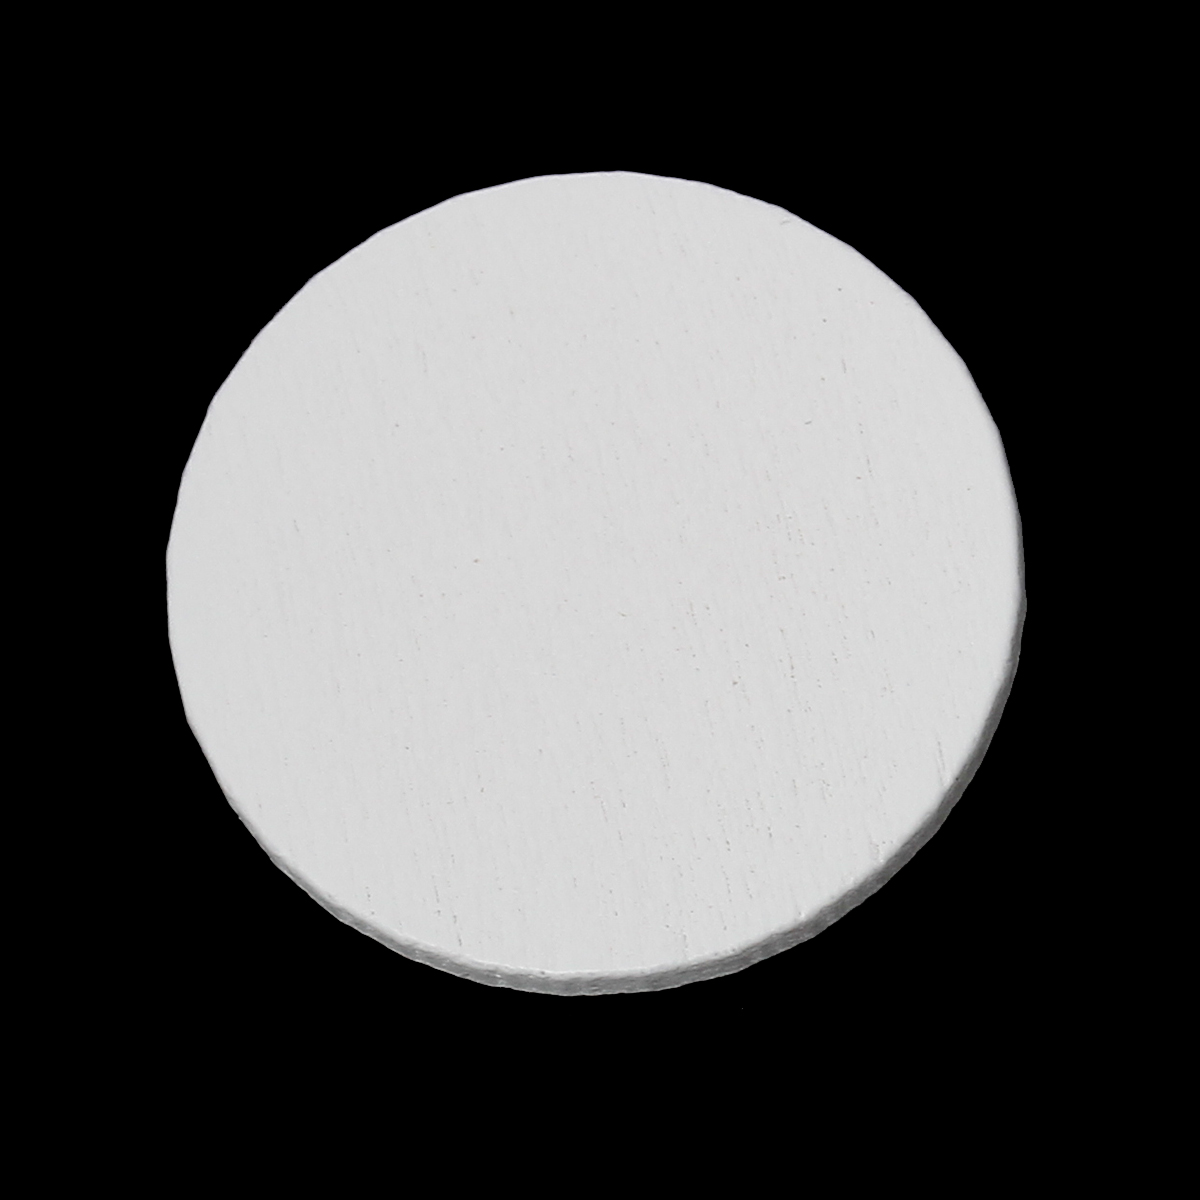 DoreenBeads Wood Cabochons Scrapbooking Embellishments Findings Round White 30mm(1 1/8)Dia,100 PCs 2015 new ...